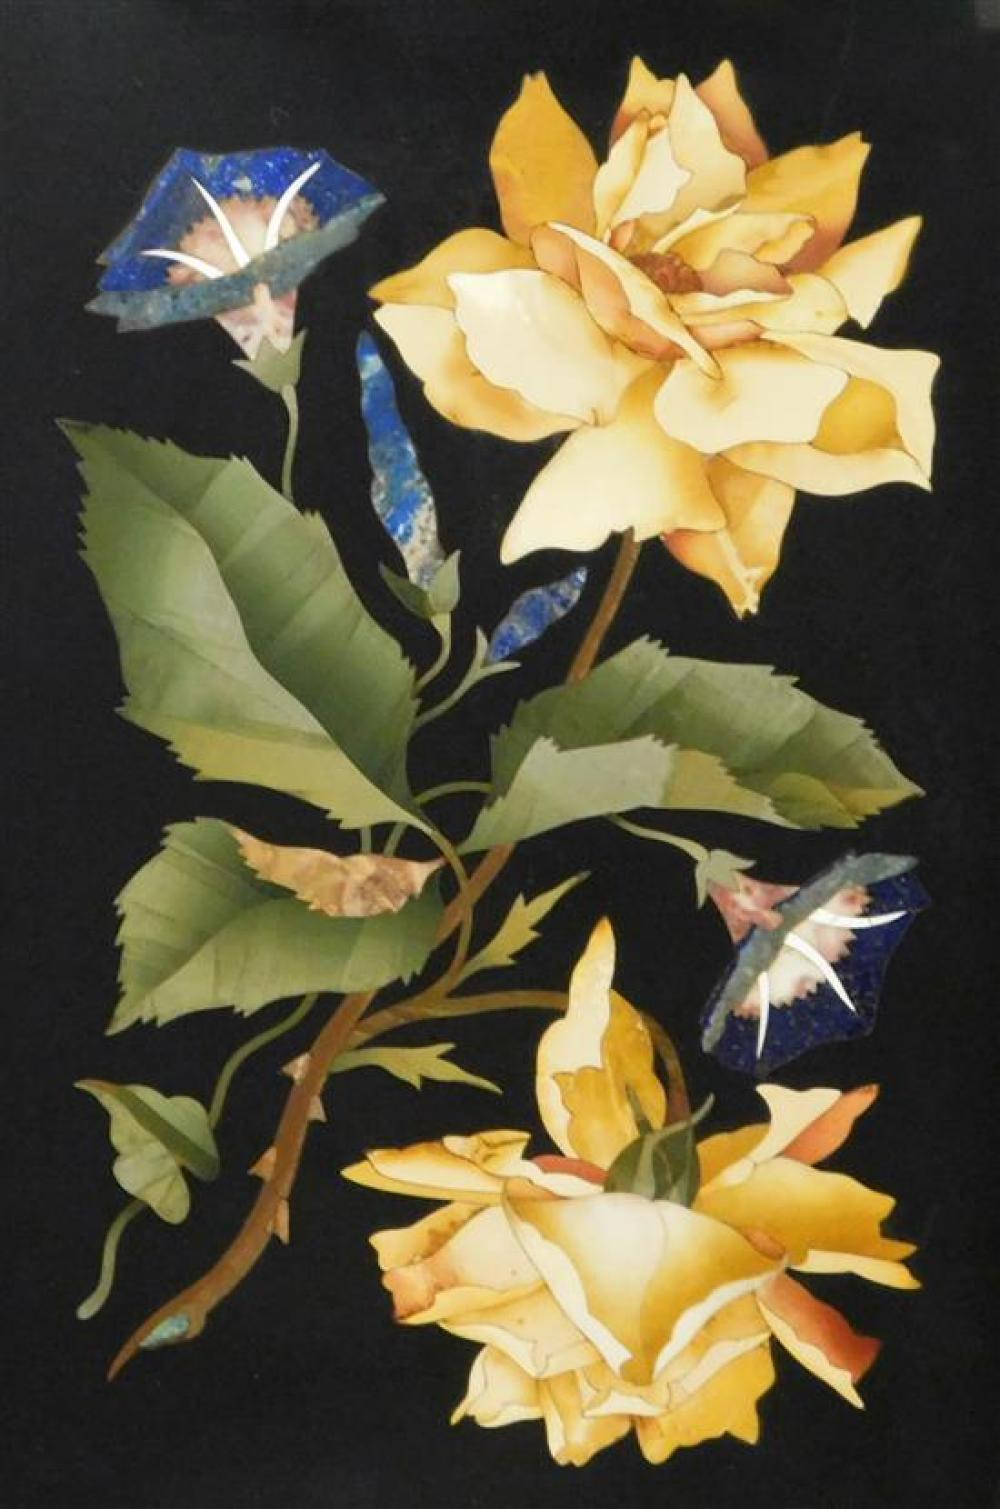 Pietra dura plaque, Italian, 19th C./20th C., depicting roses and morning glories, framed, not examined out of frame, wear consisten...